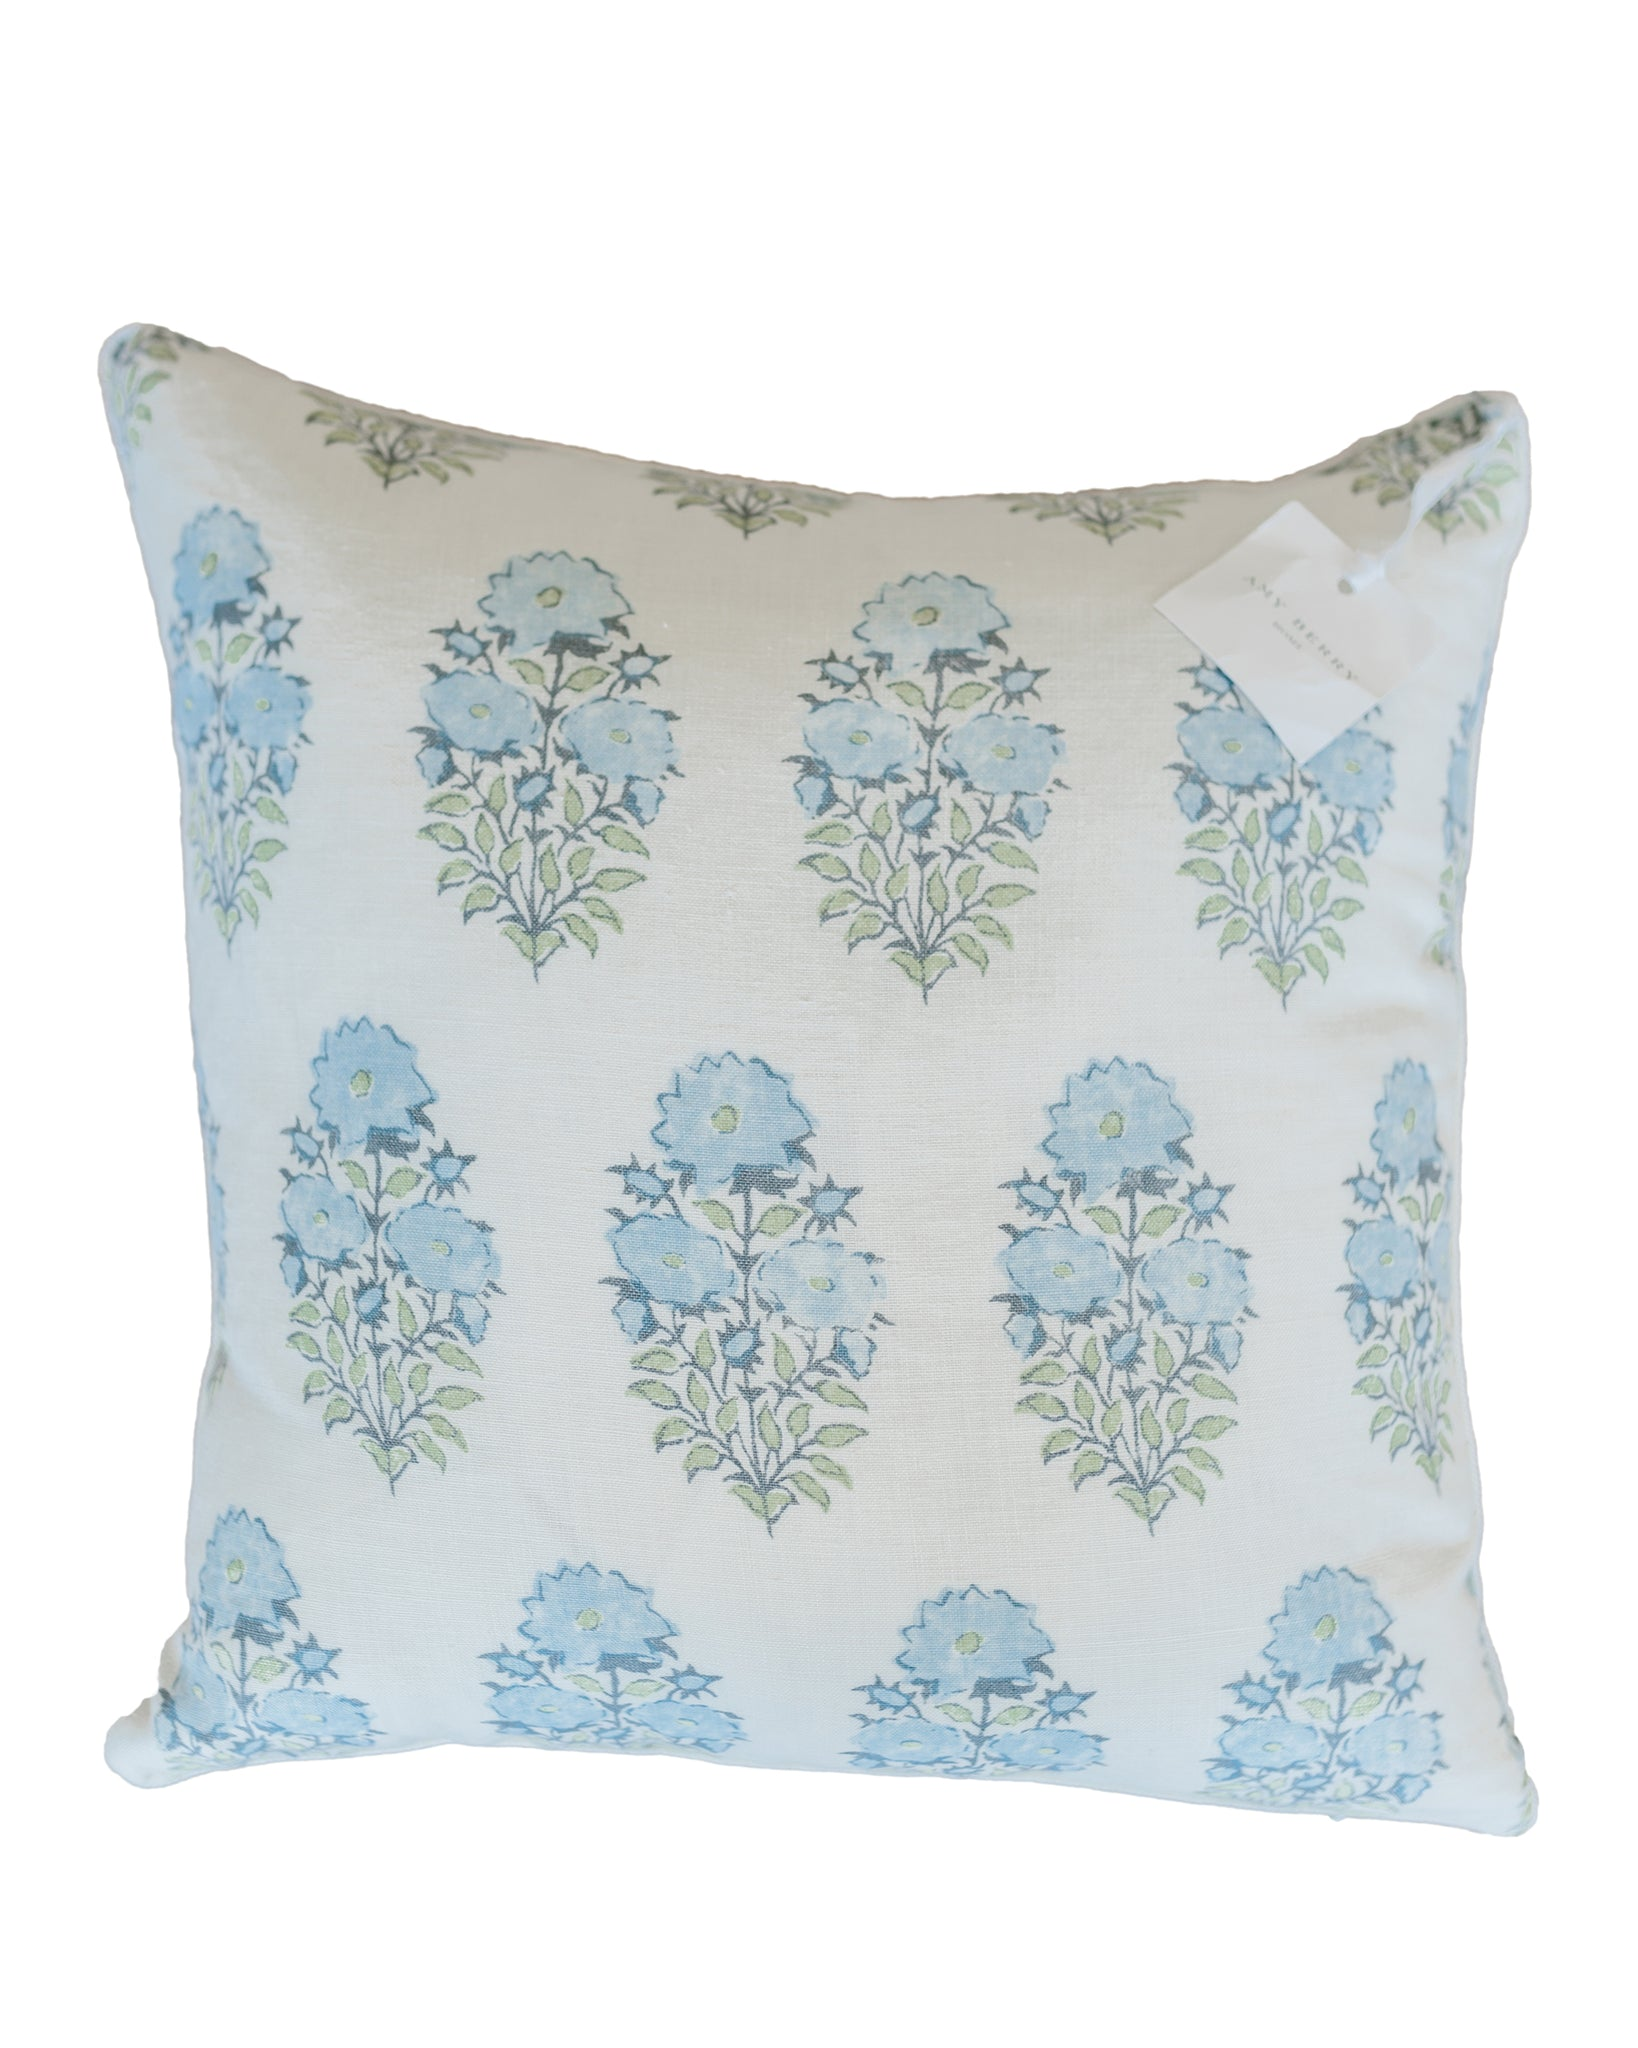 Mughal Flower Pillows - Amy Berry Home